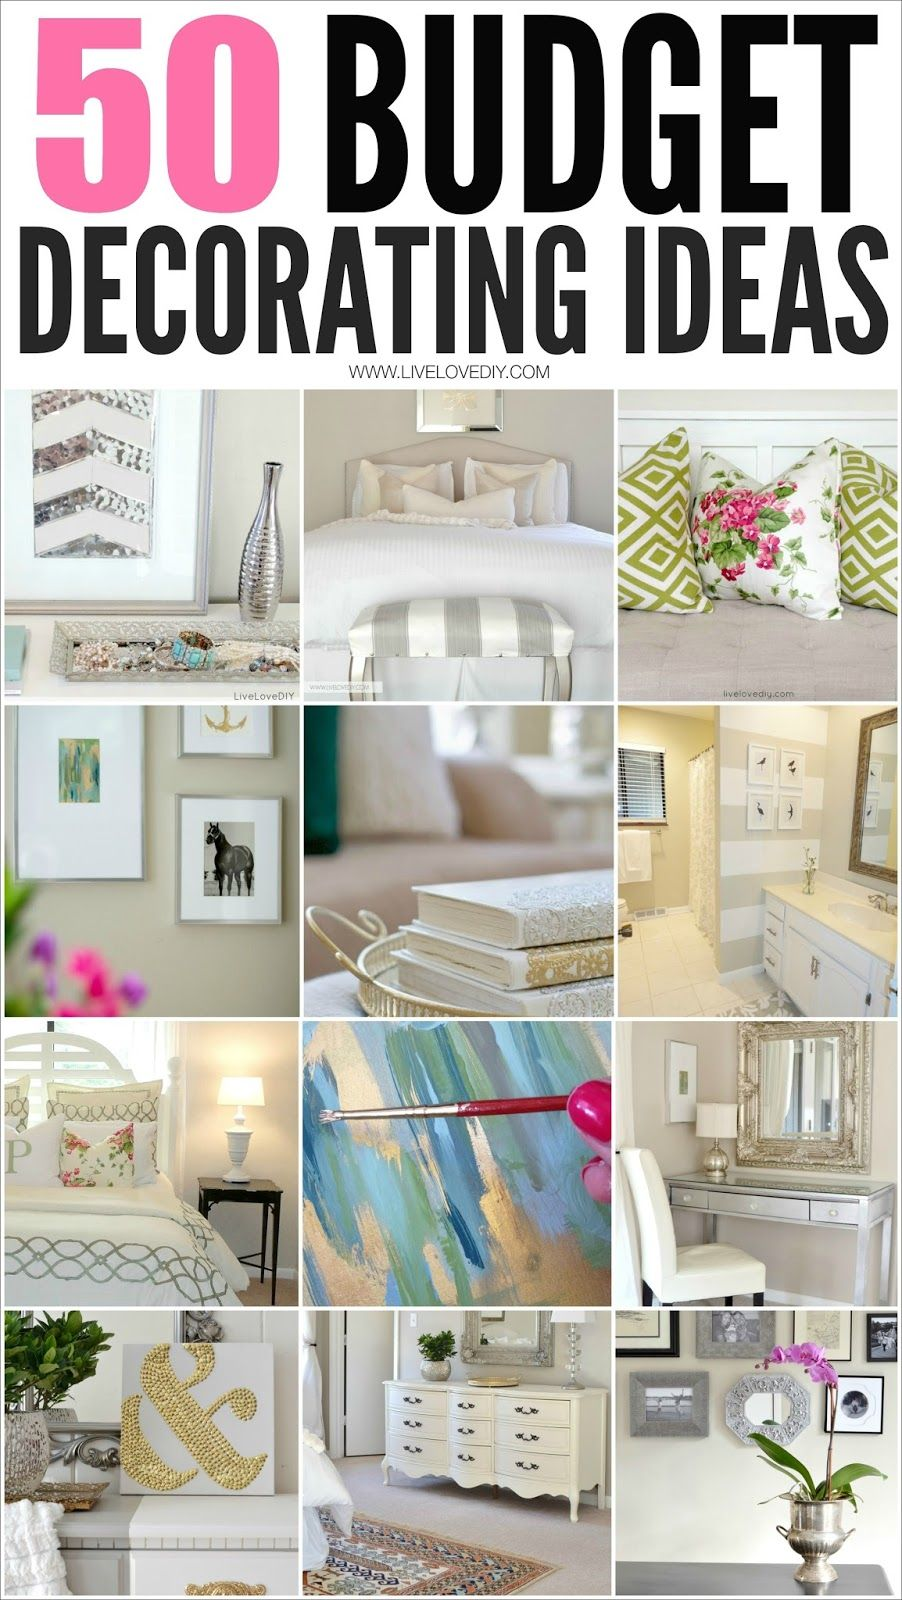 Real Home Decorating Ideas Part - 31: LiveLoveDIY: 50 Budget Decorating Tips You Should Know! Seriously One Of  The Most Helpful Collection Of DIY Ideas. MUST READ